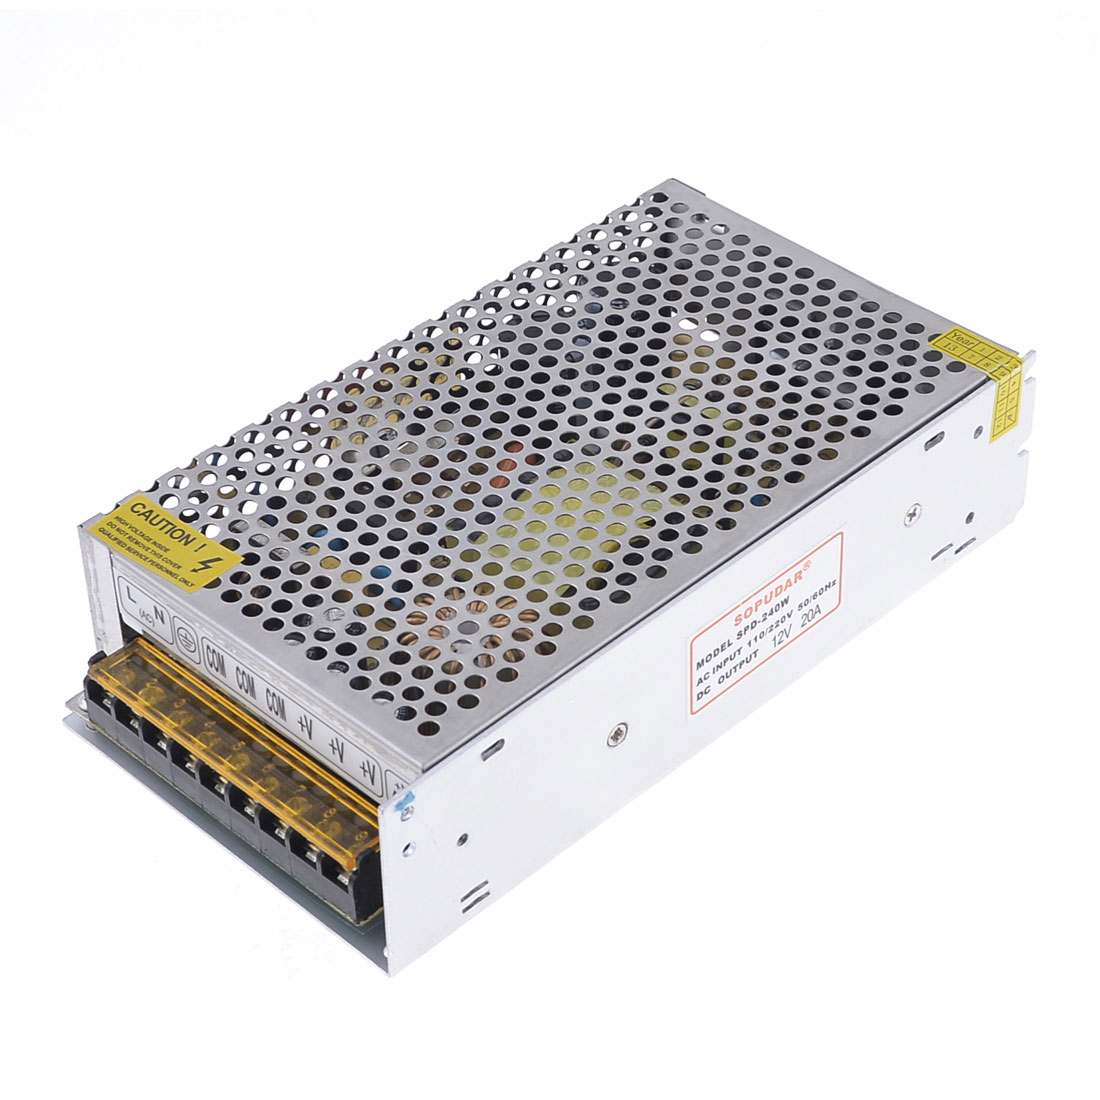 Heatsink Cooling AC 110/220V to 12V DC 20A 240W Switch Power Supply Adapter